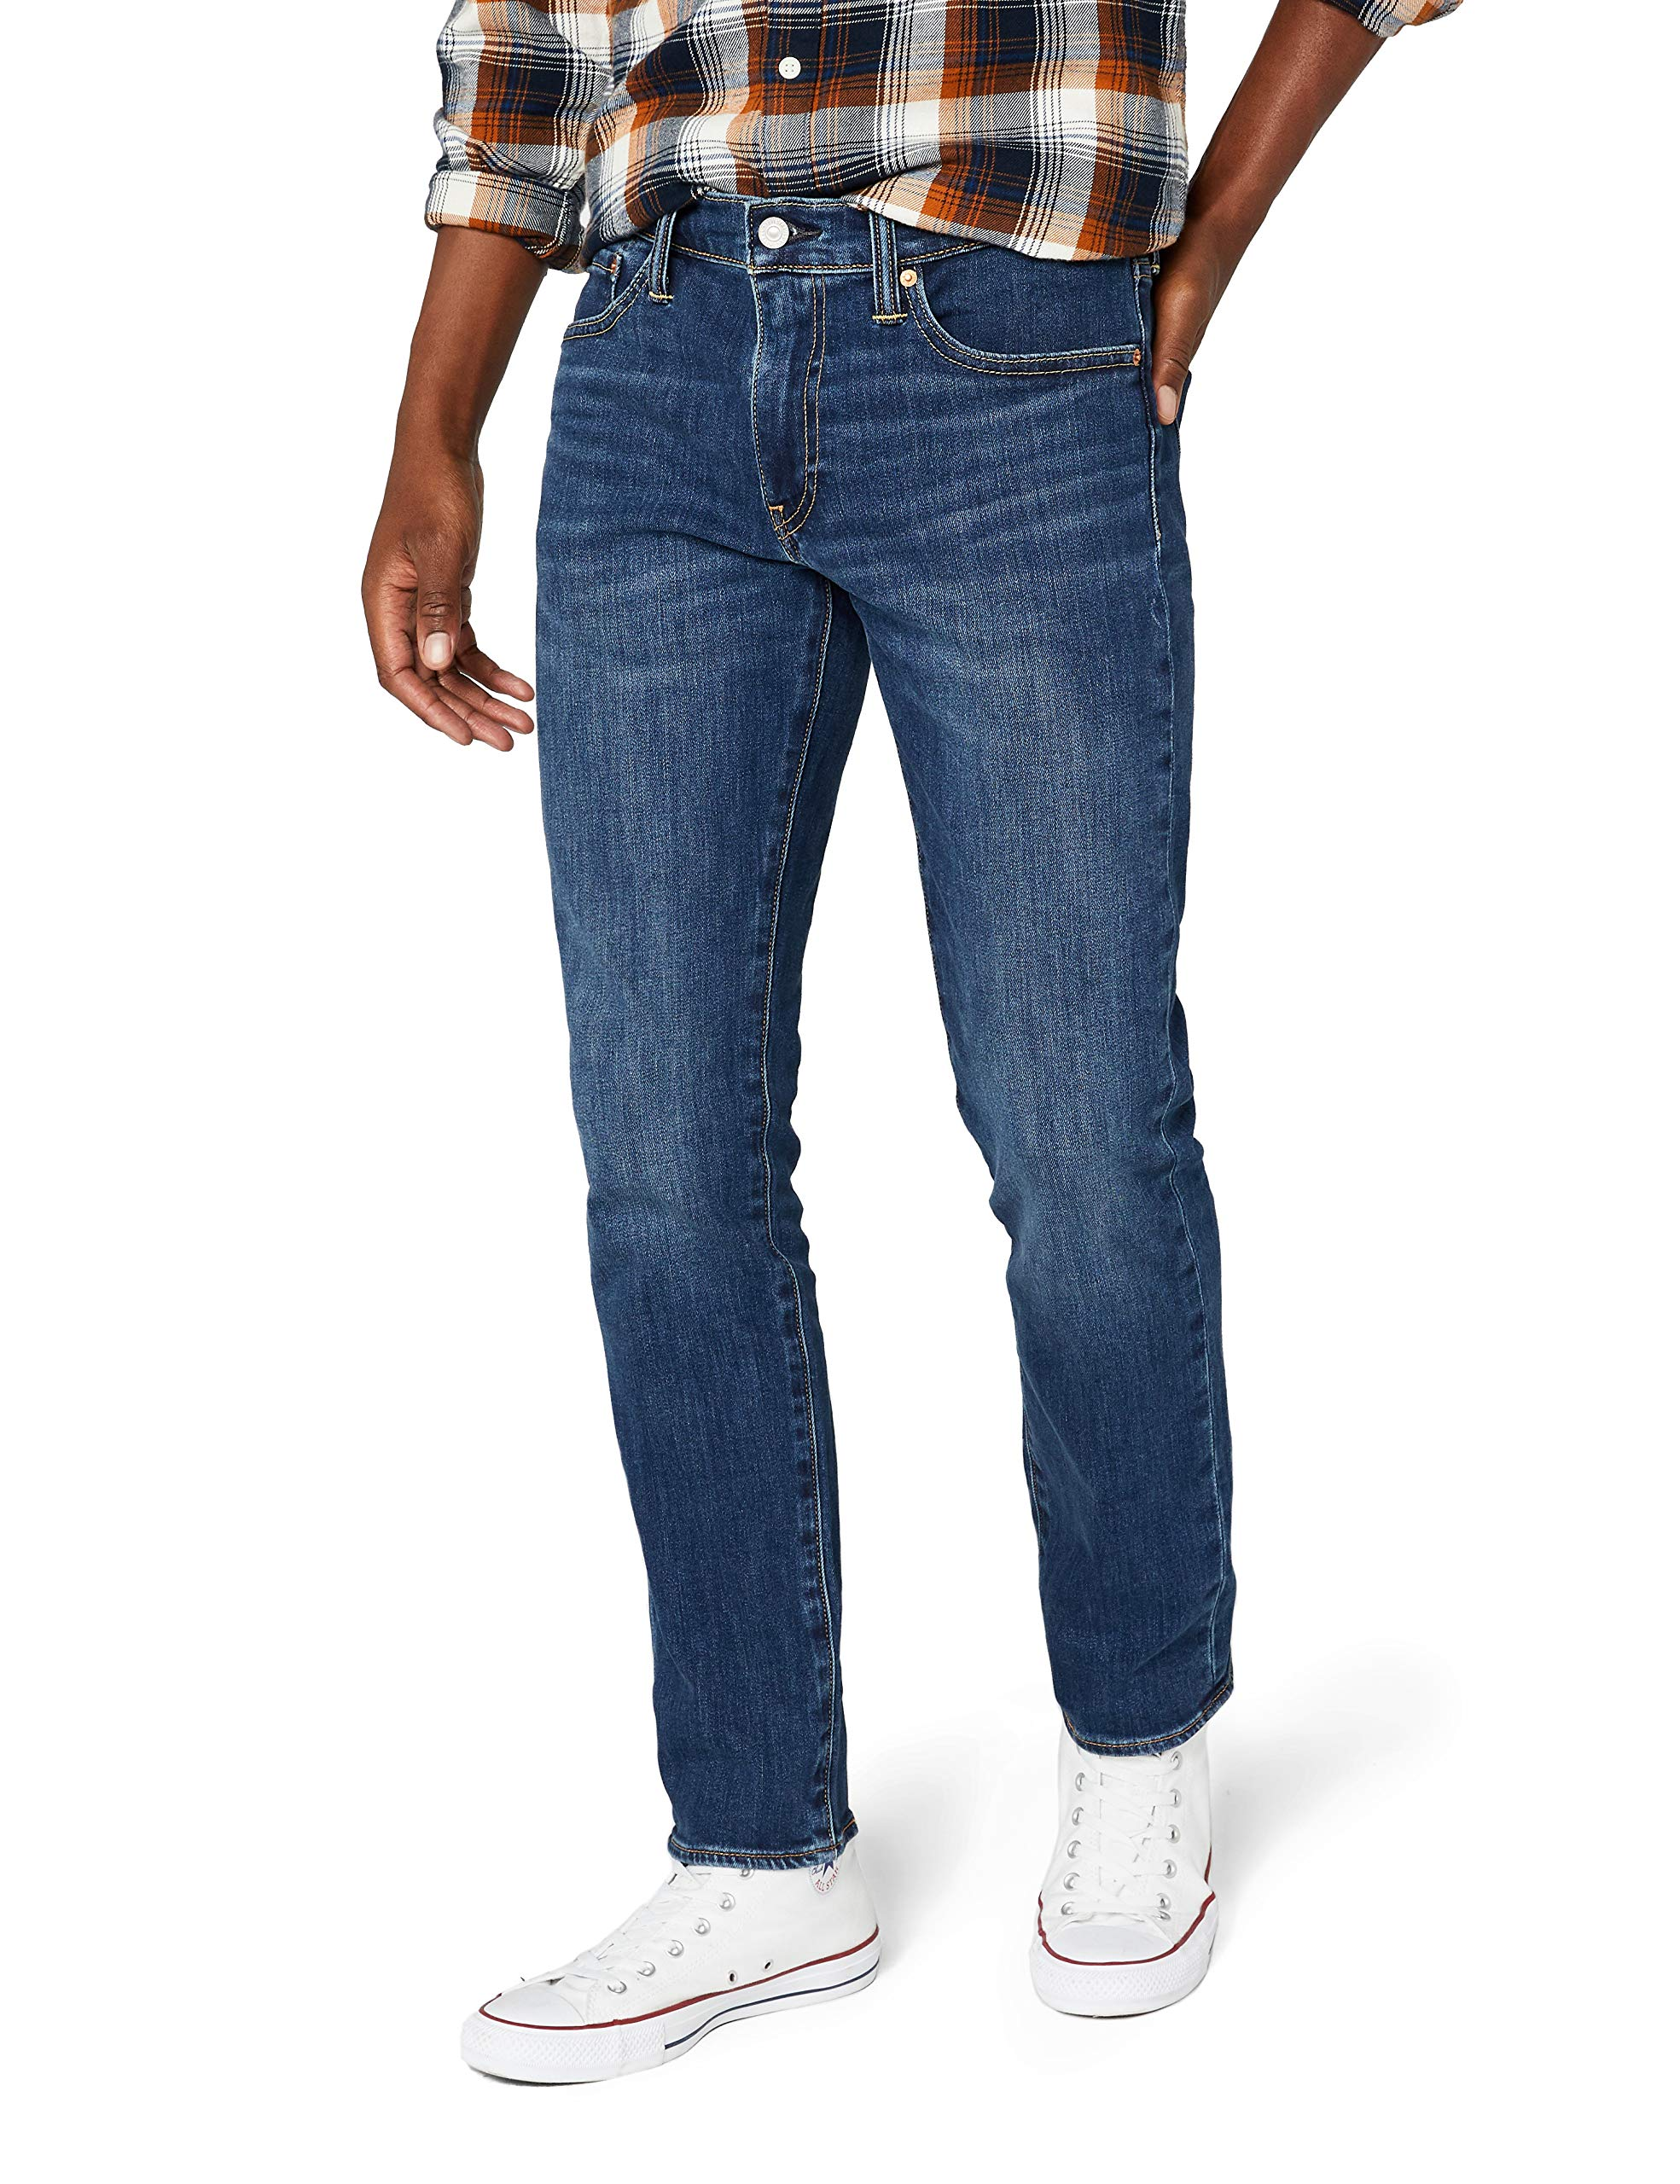 747a5b8db Amazon.co.uk | Men's Jeans